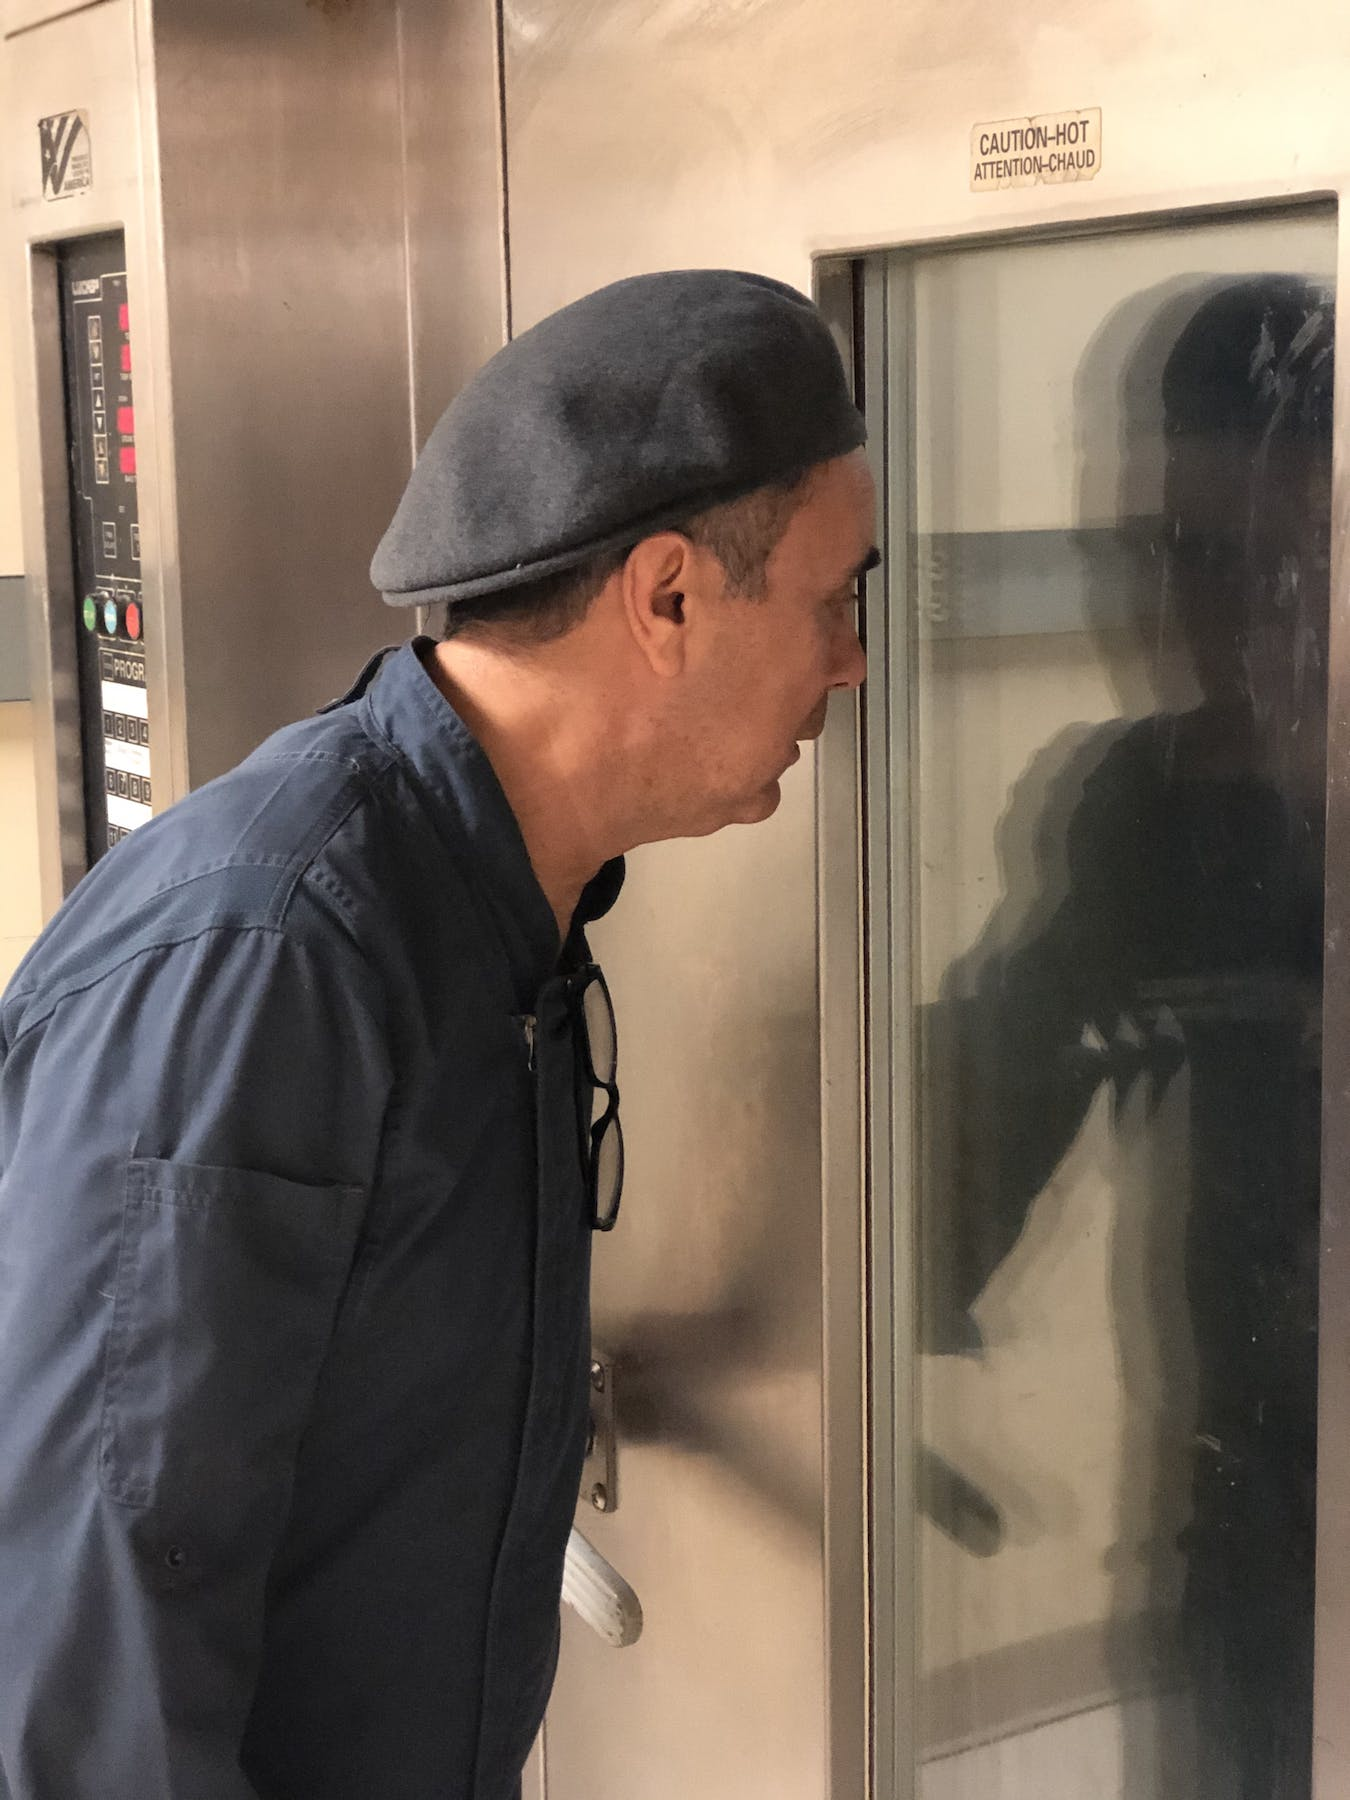 a man looking at a fridge door